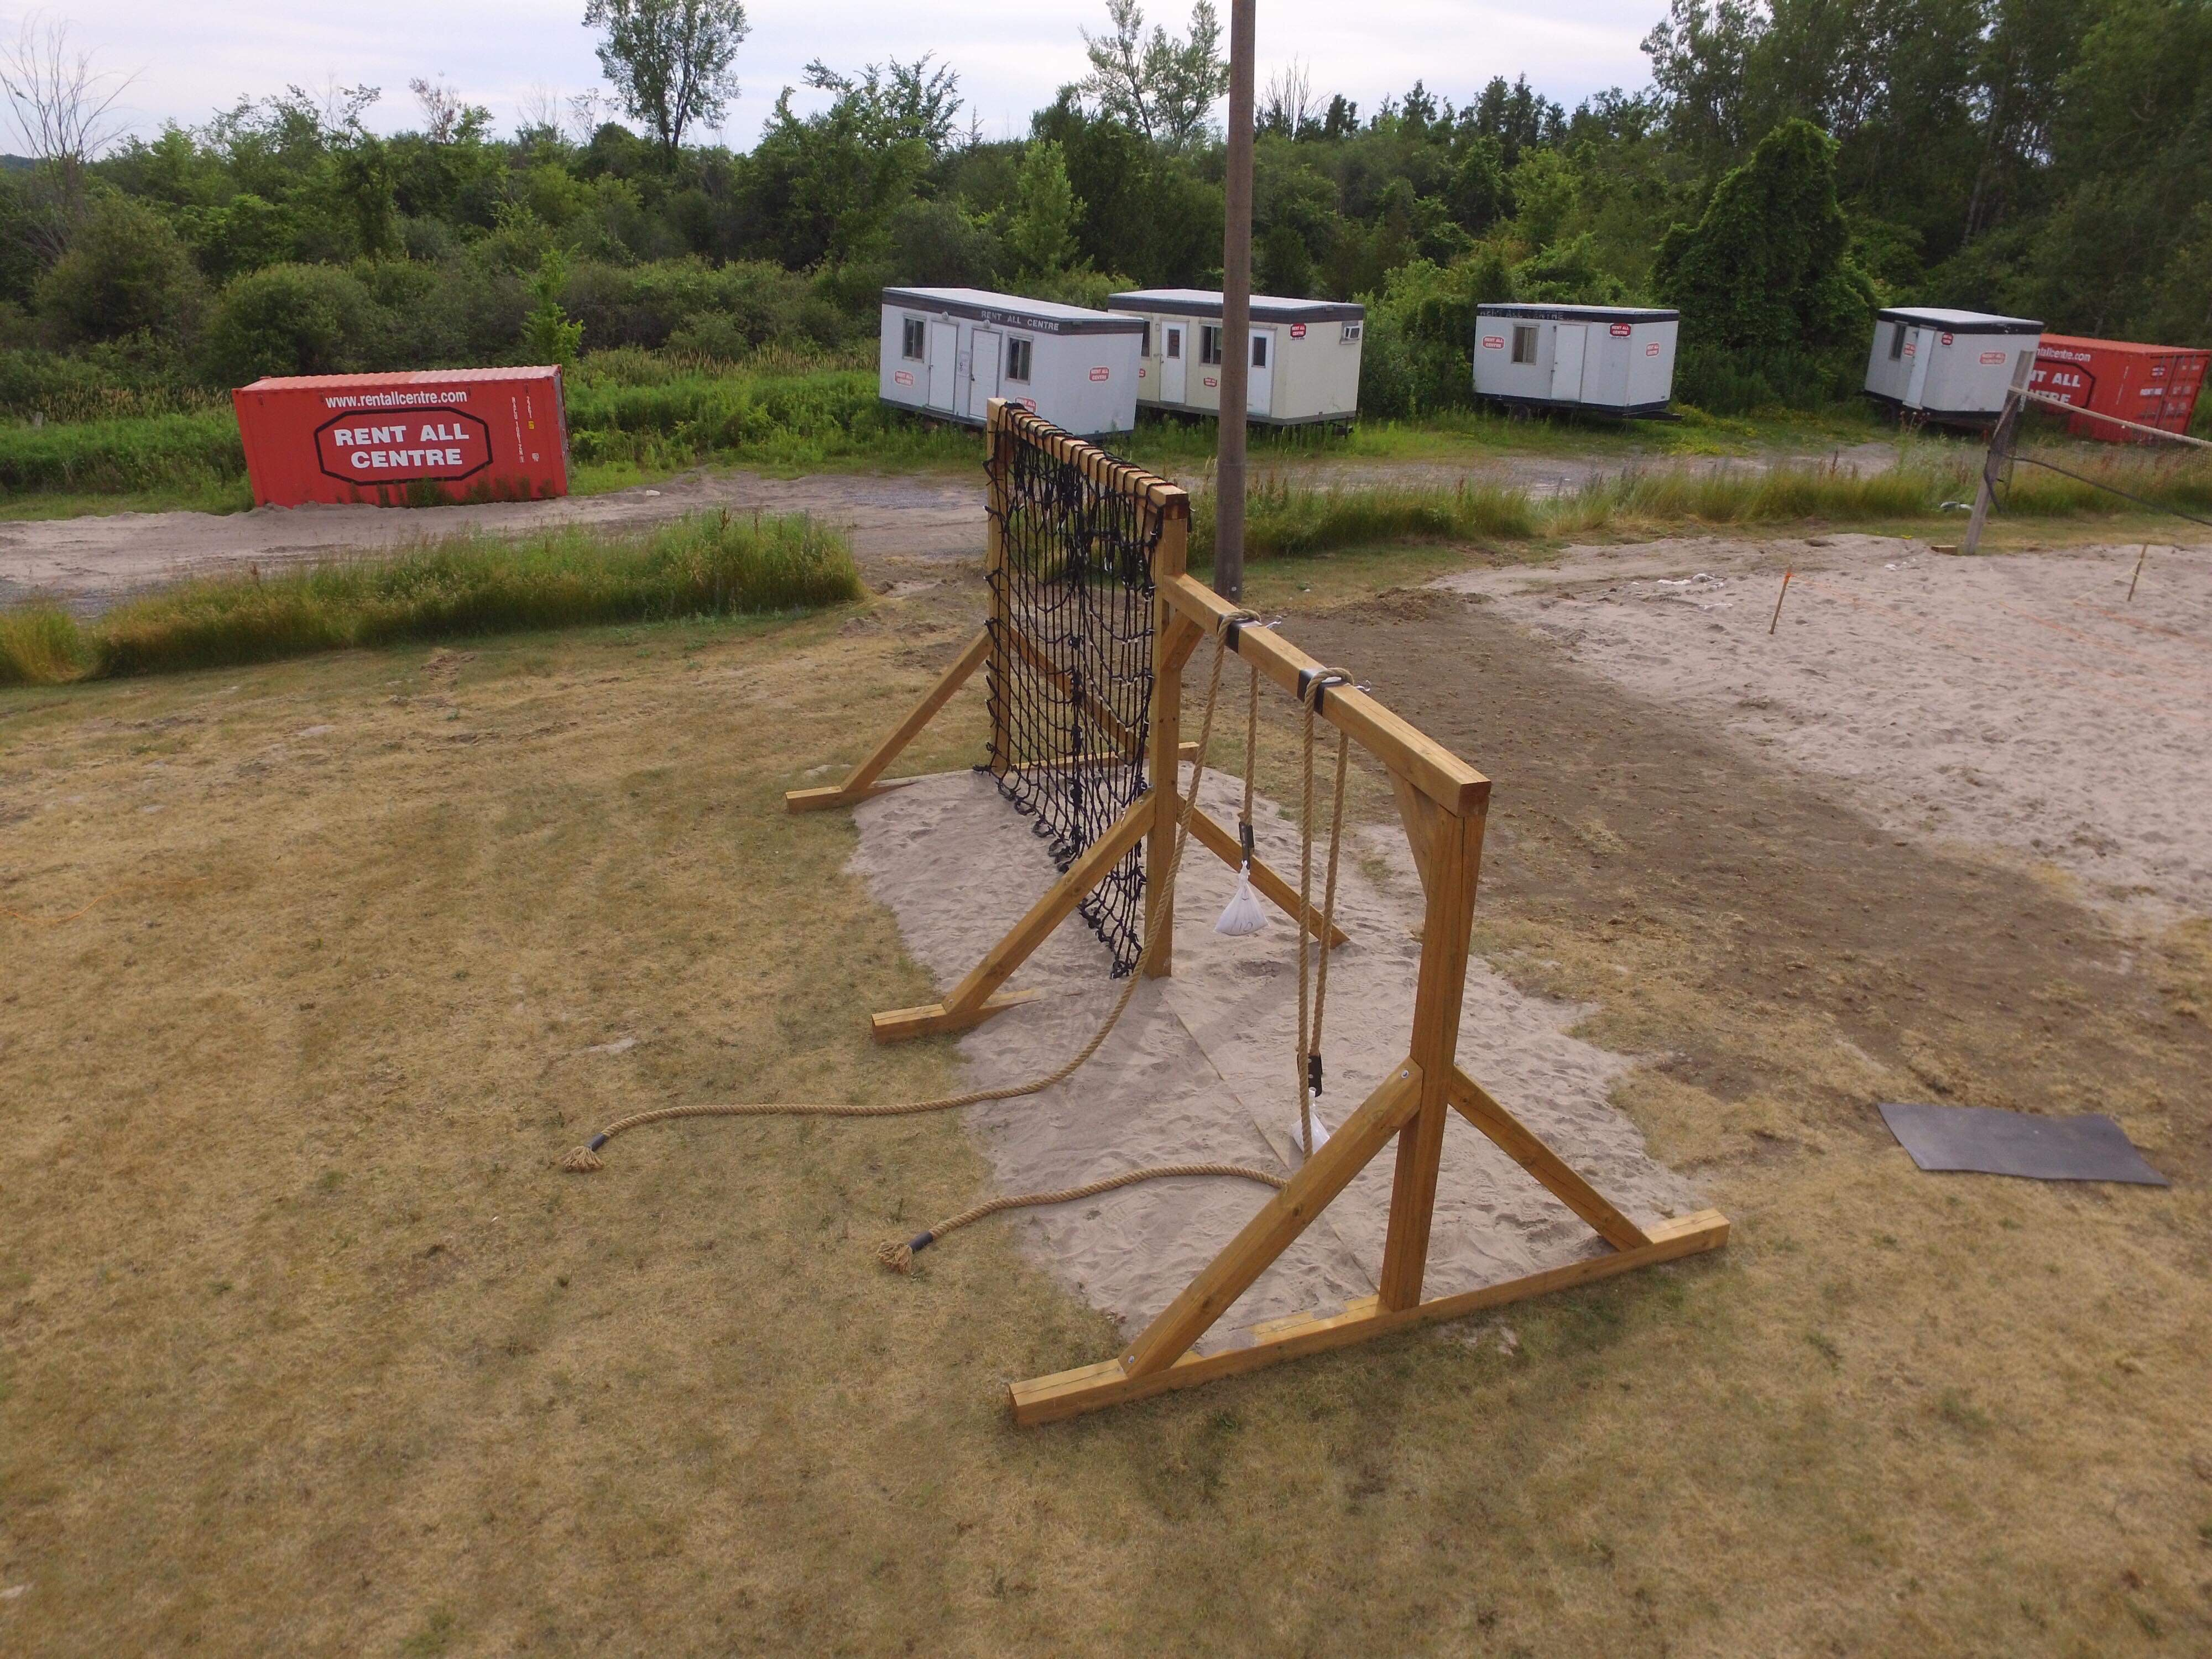 IMG_7646-obstacle course